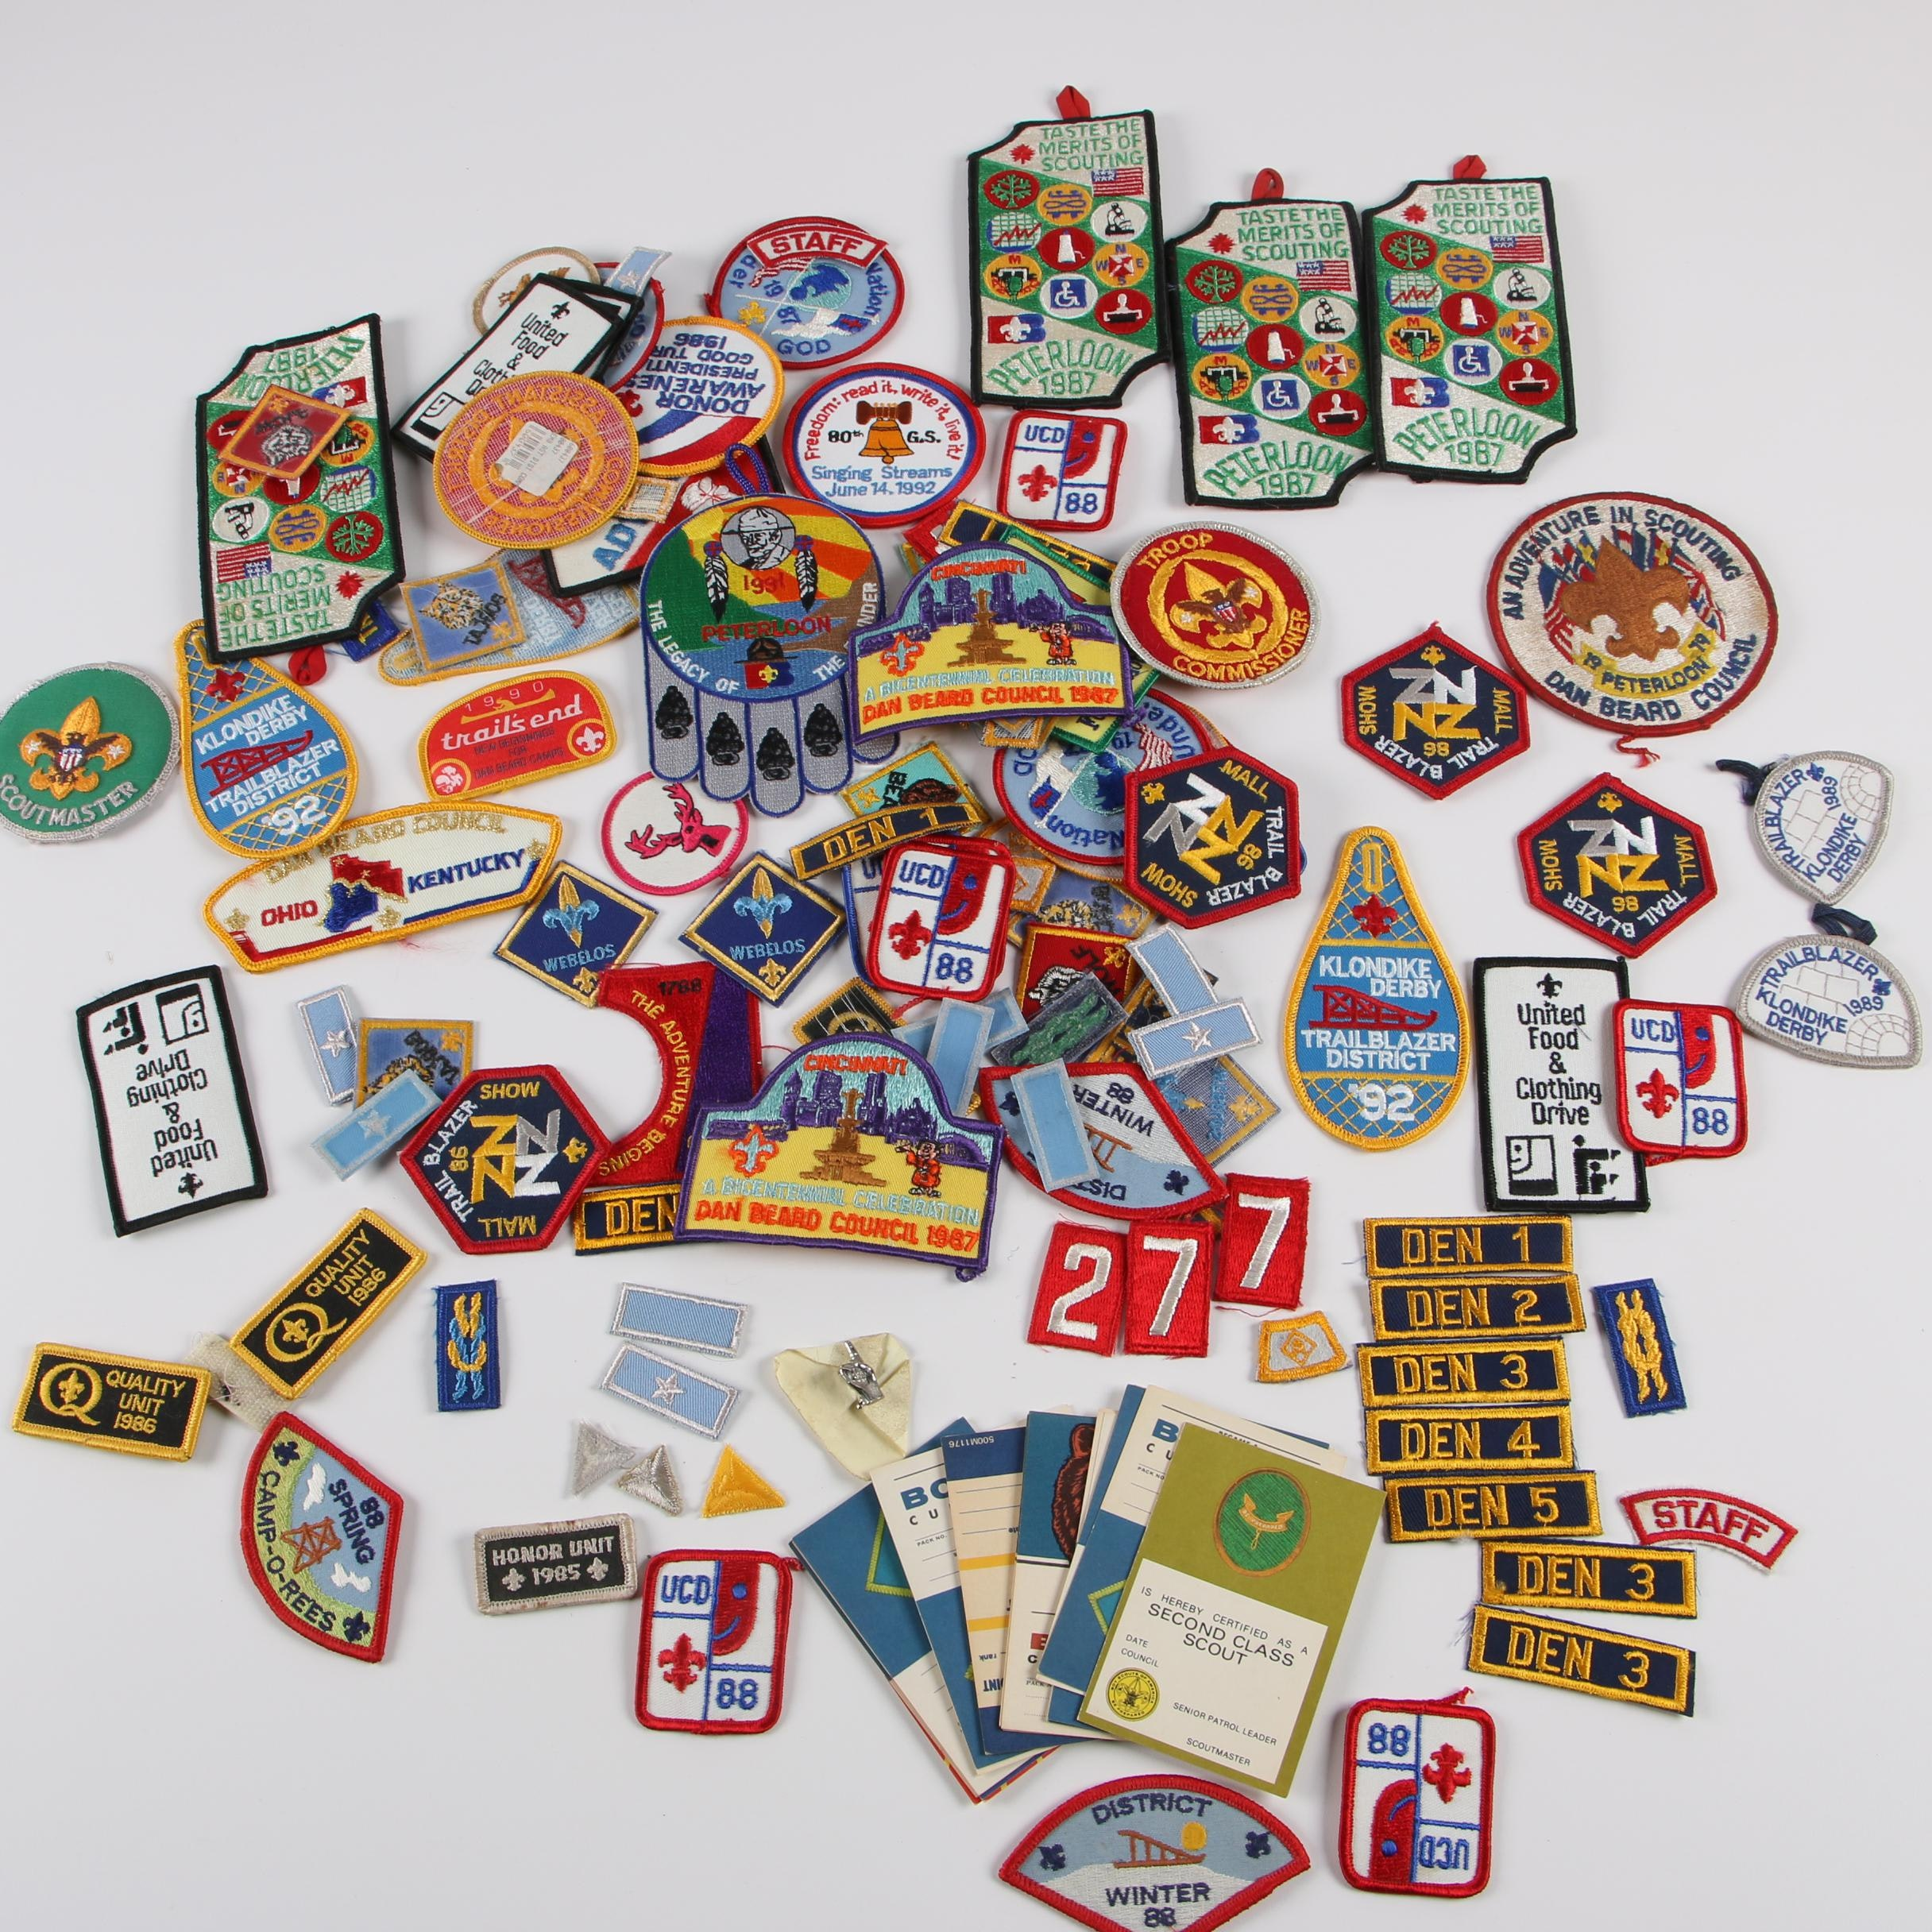 Boy Scouts of America Badges